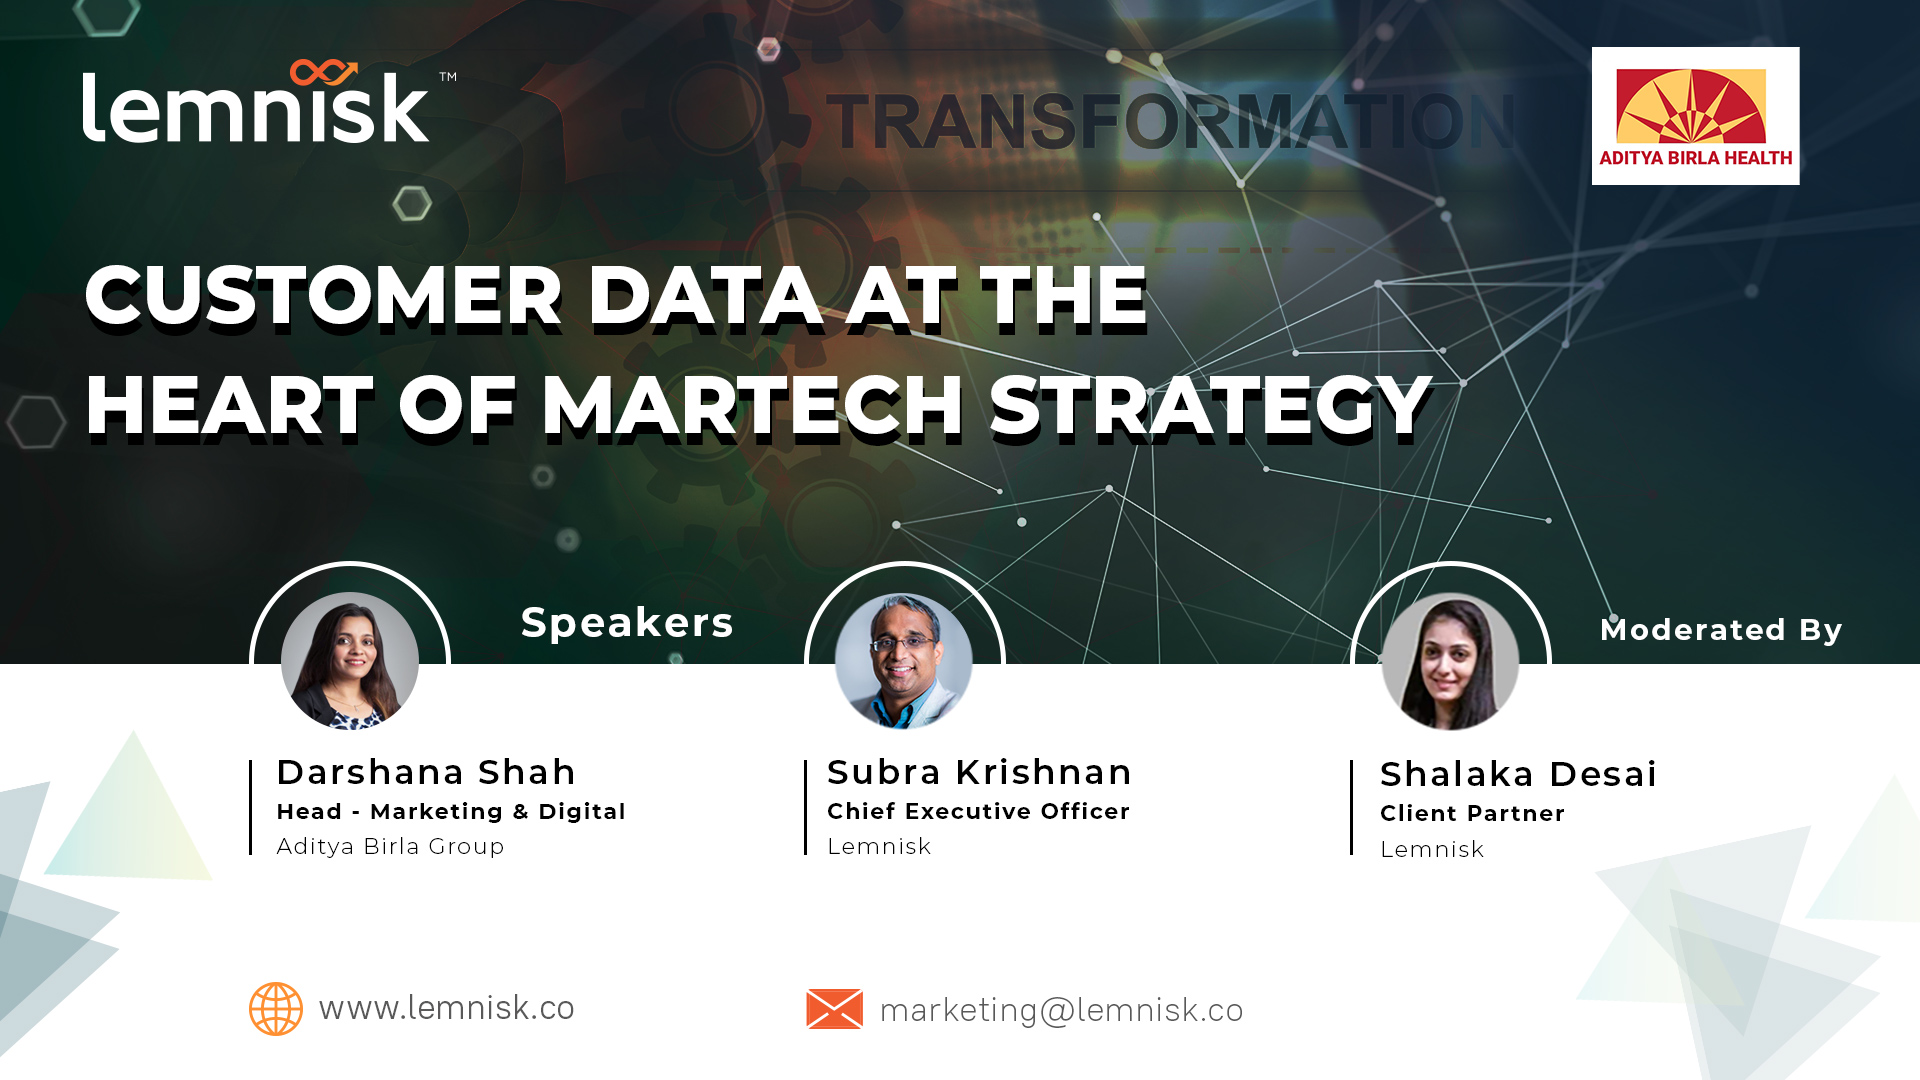 Customer Data at the Heart of Martech Strategy